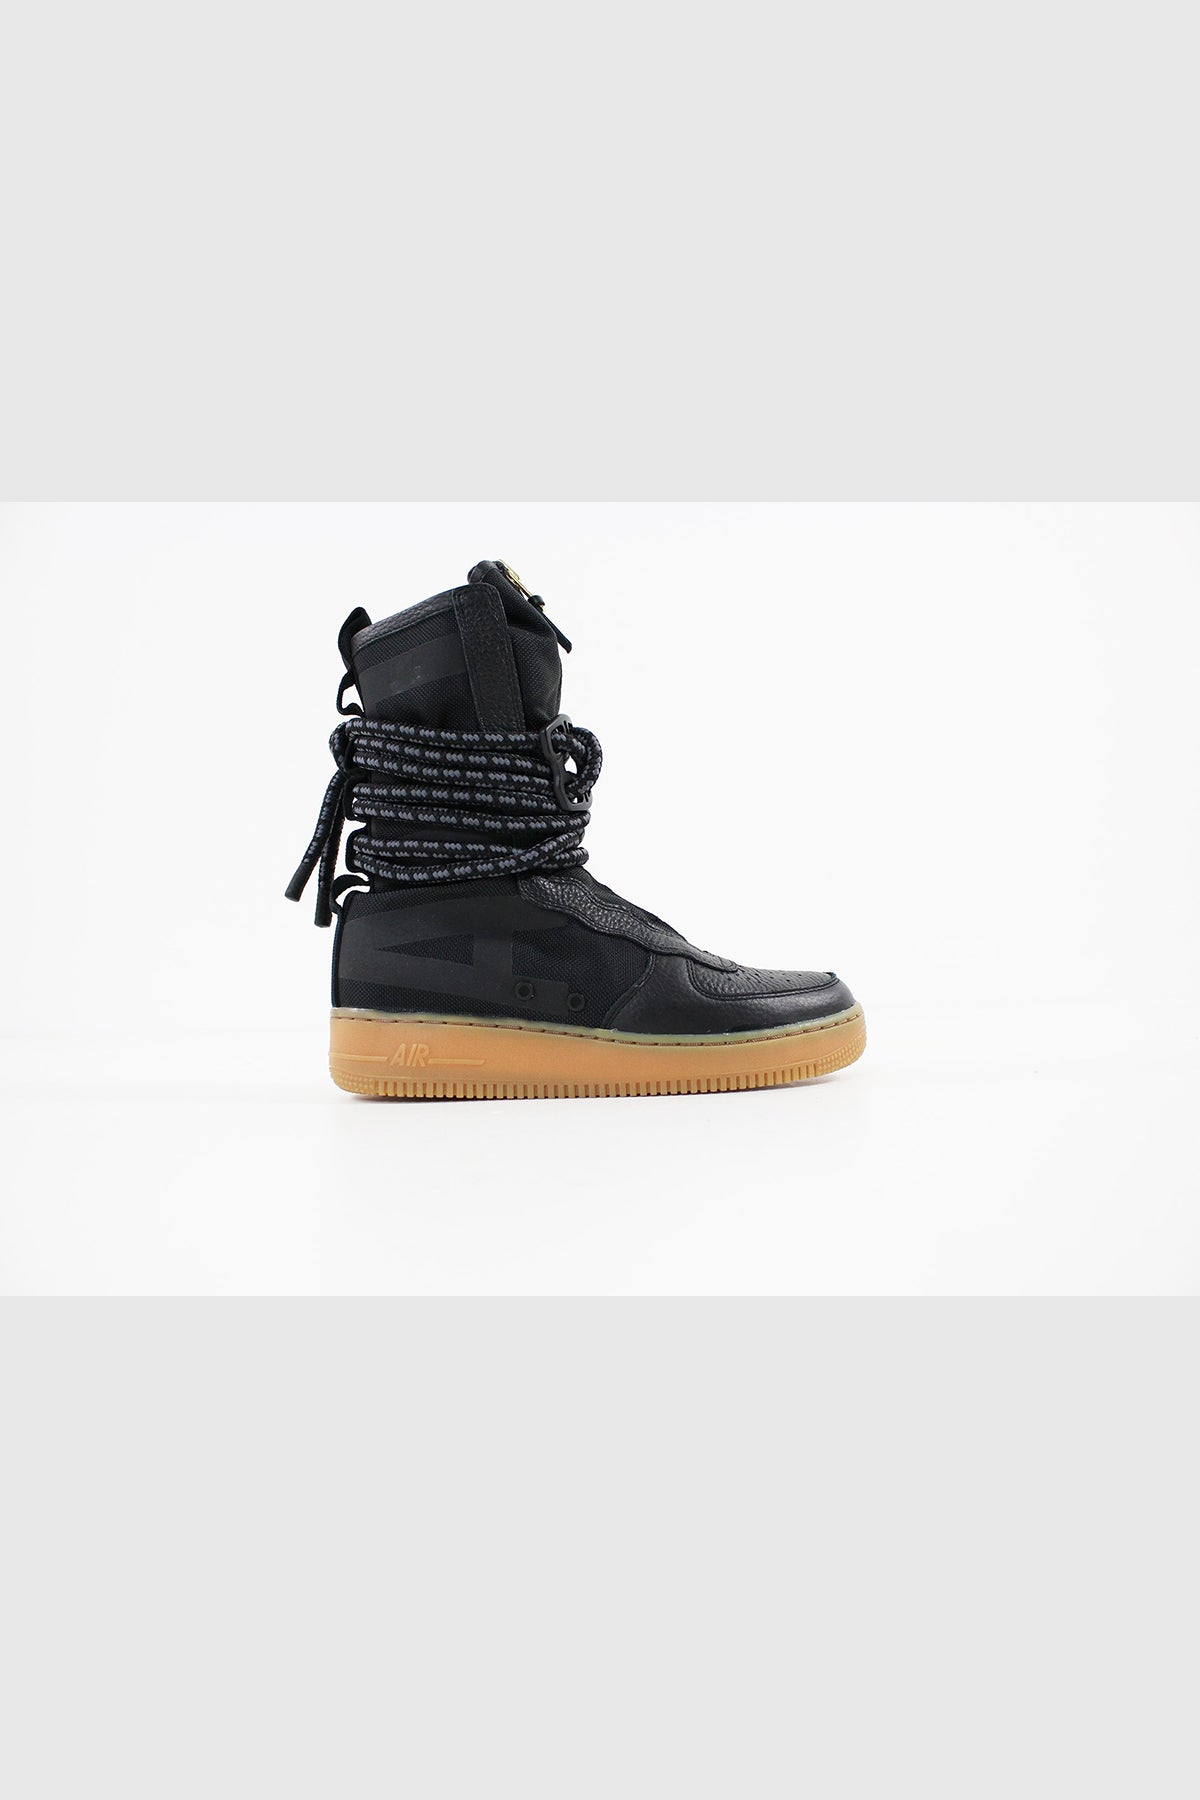 Nike - SF Air Force 1 Hi Boot Women (BLACK/BLACK-GUM LIGHT BROWN) AA3965-001